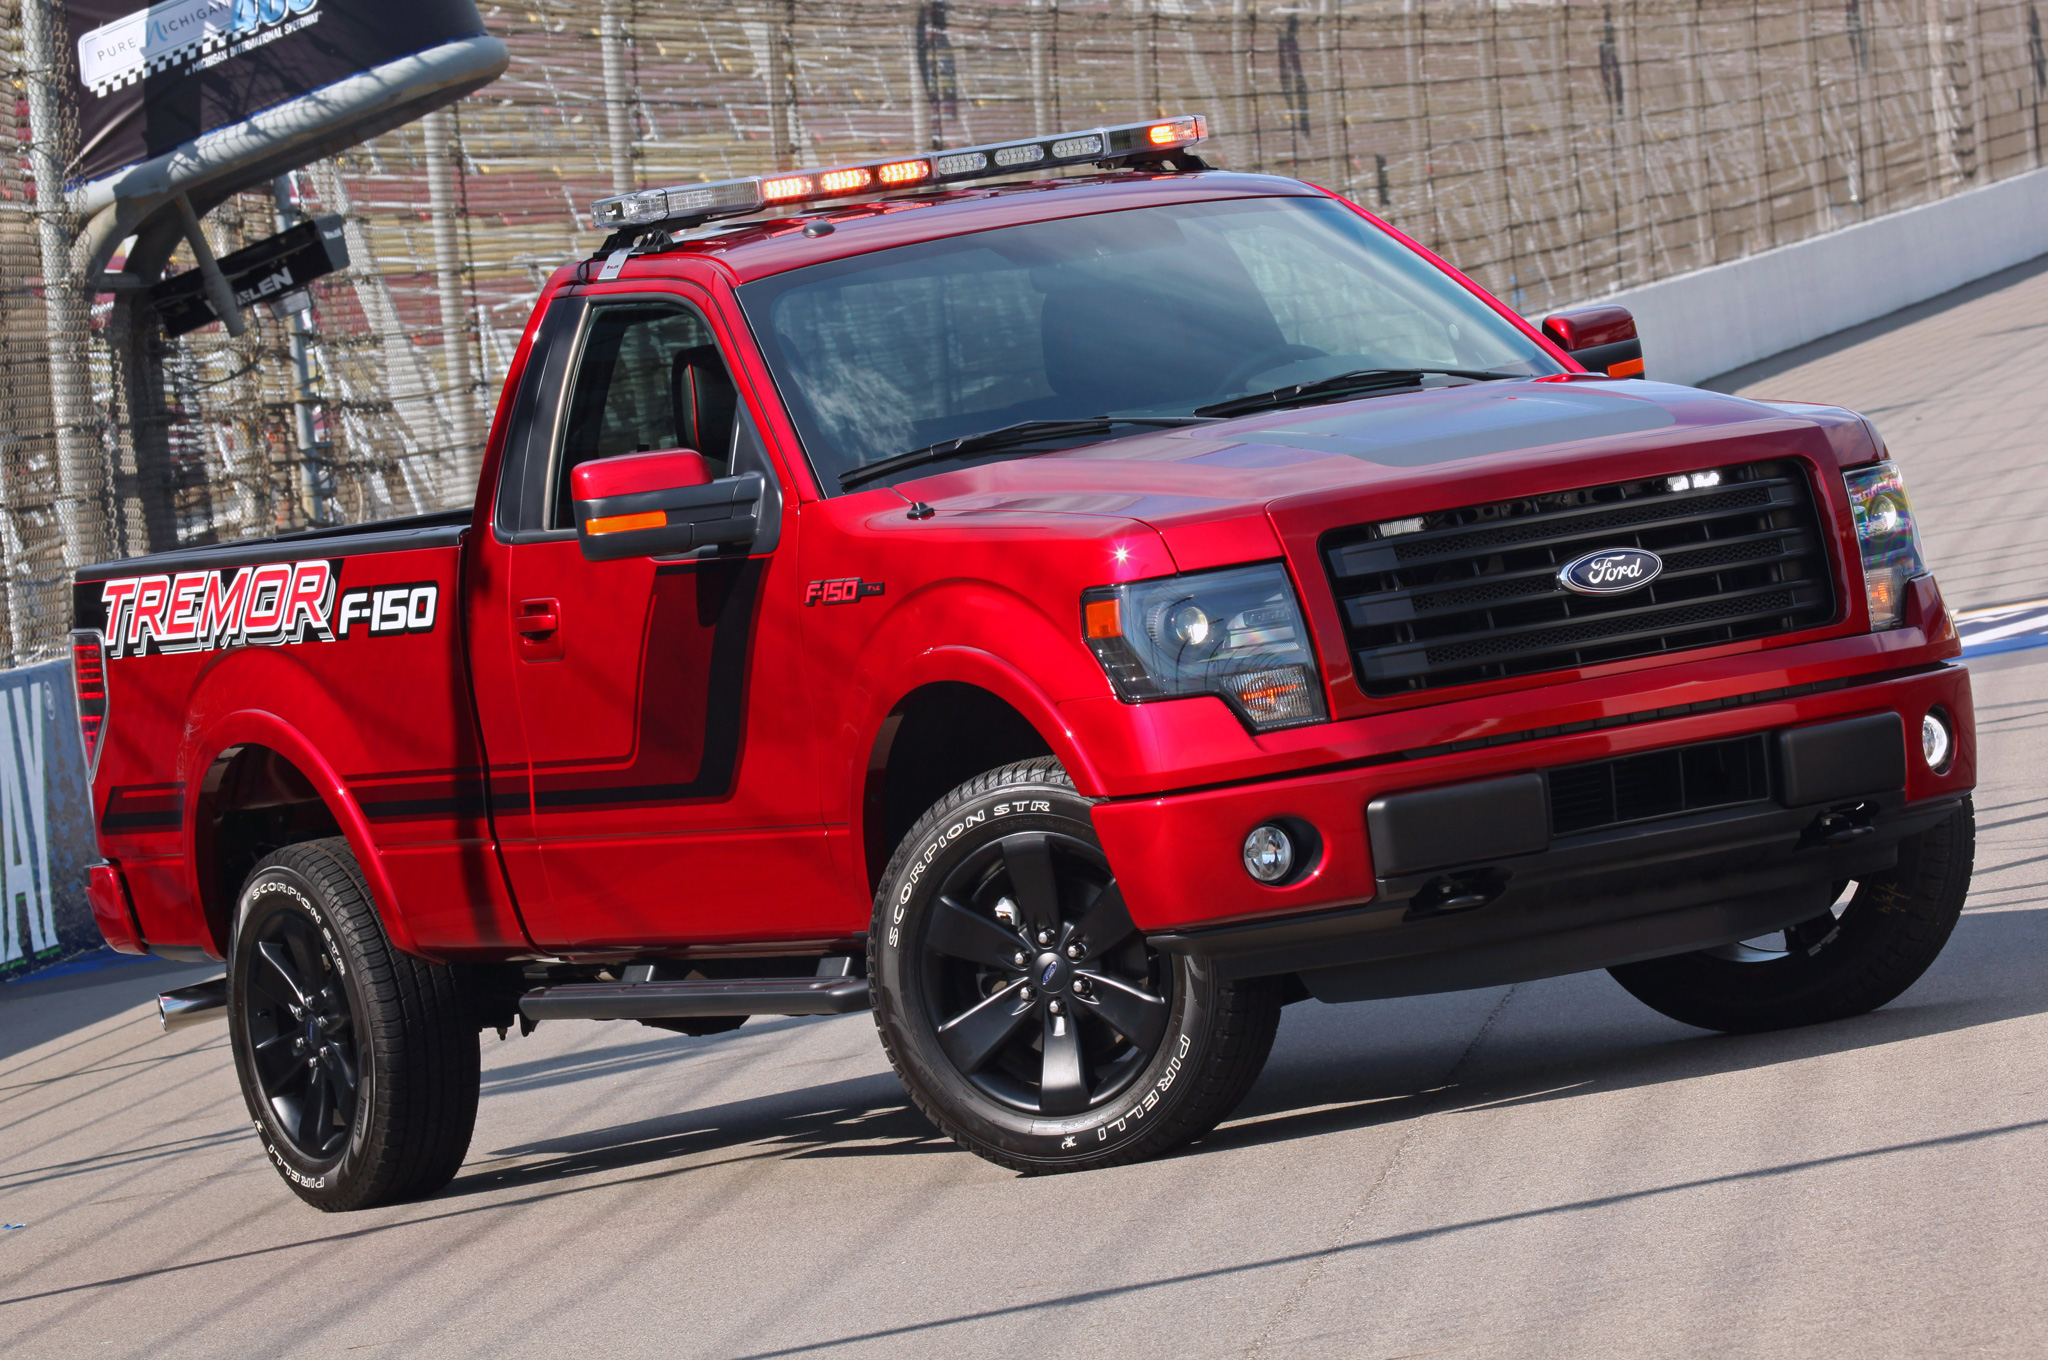 2014 Ford F 150 Tremor to Pace NASCAR Truck Race Motor Trend